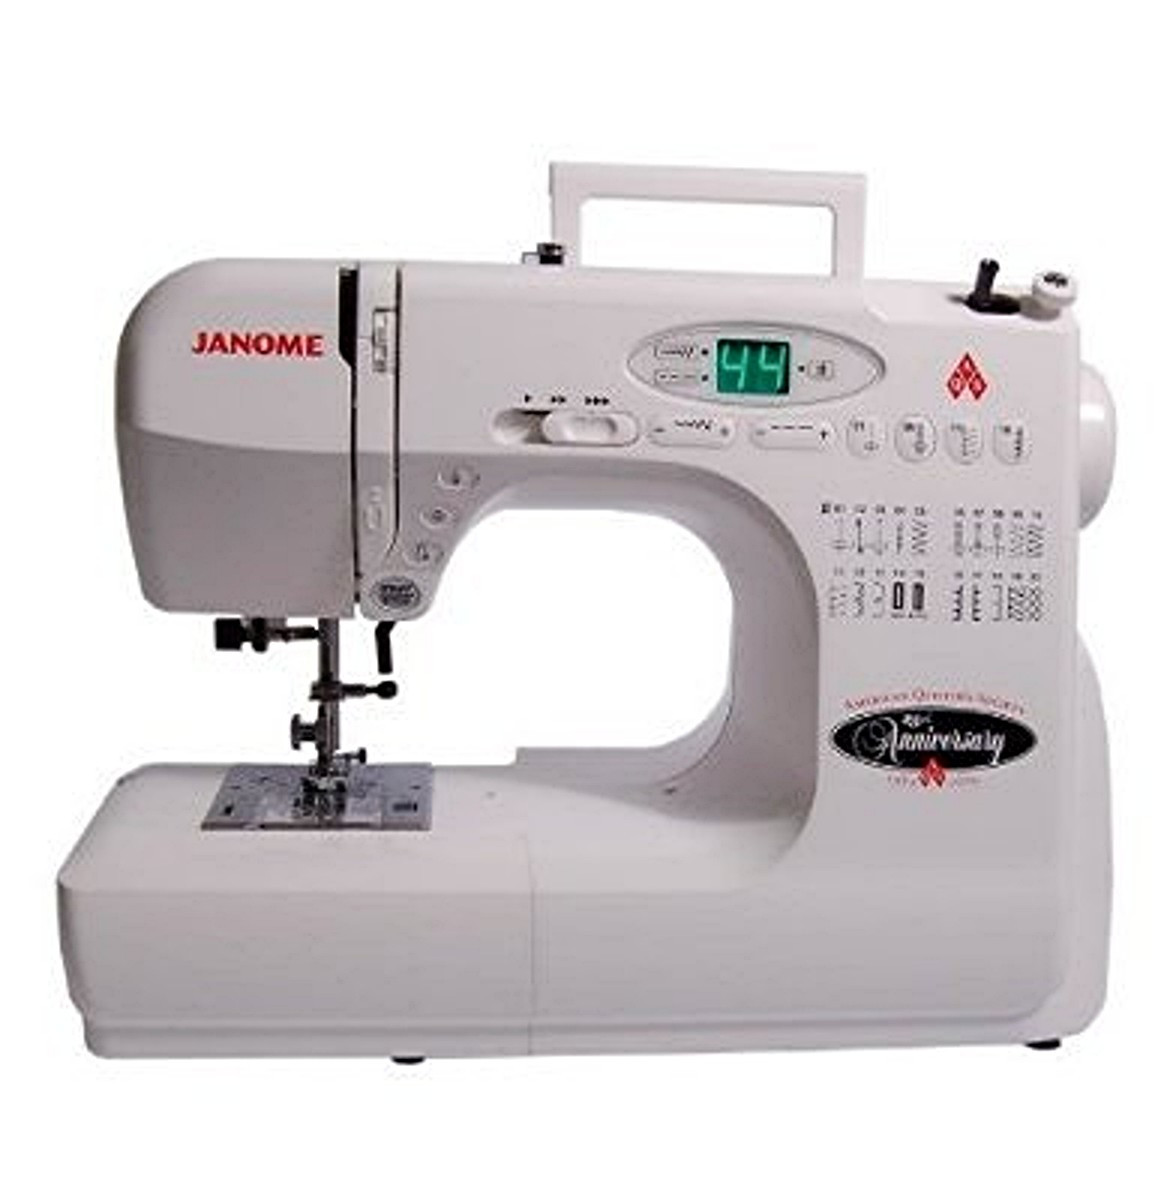 Sewing and Embroidery Machine Unique Janome Aqs 2009 Sewing Machine Review Of Unique 48 Pics Sewing and Embroidery Machine